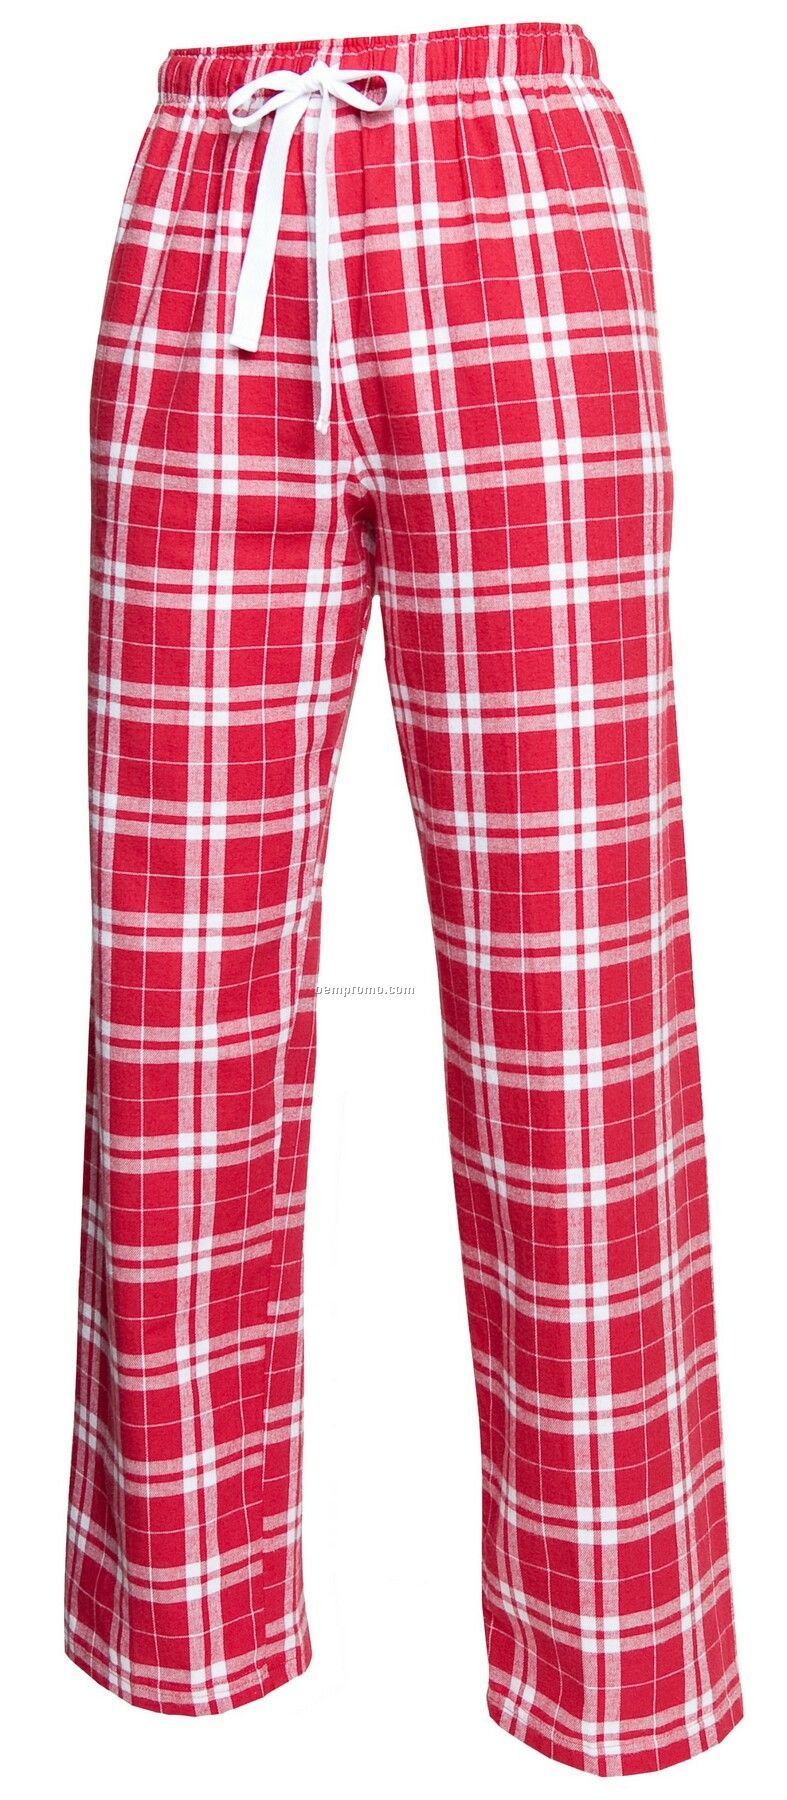 Adult Team Pride Flannel Pant In Cardinal Red & White Plaid